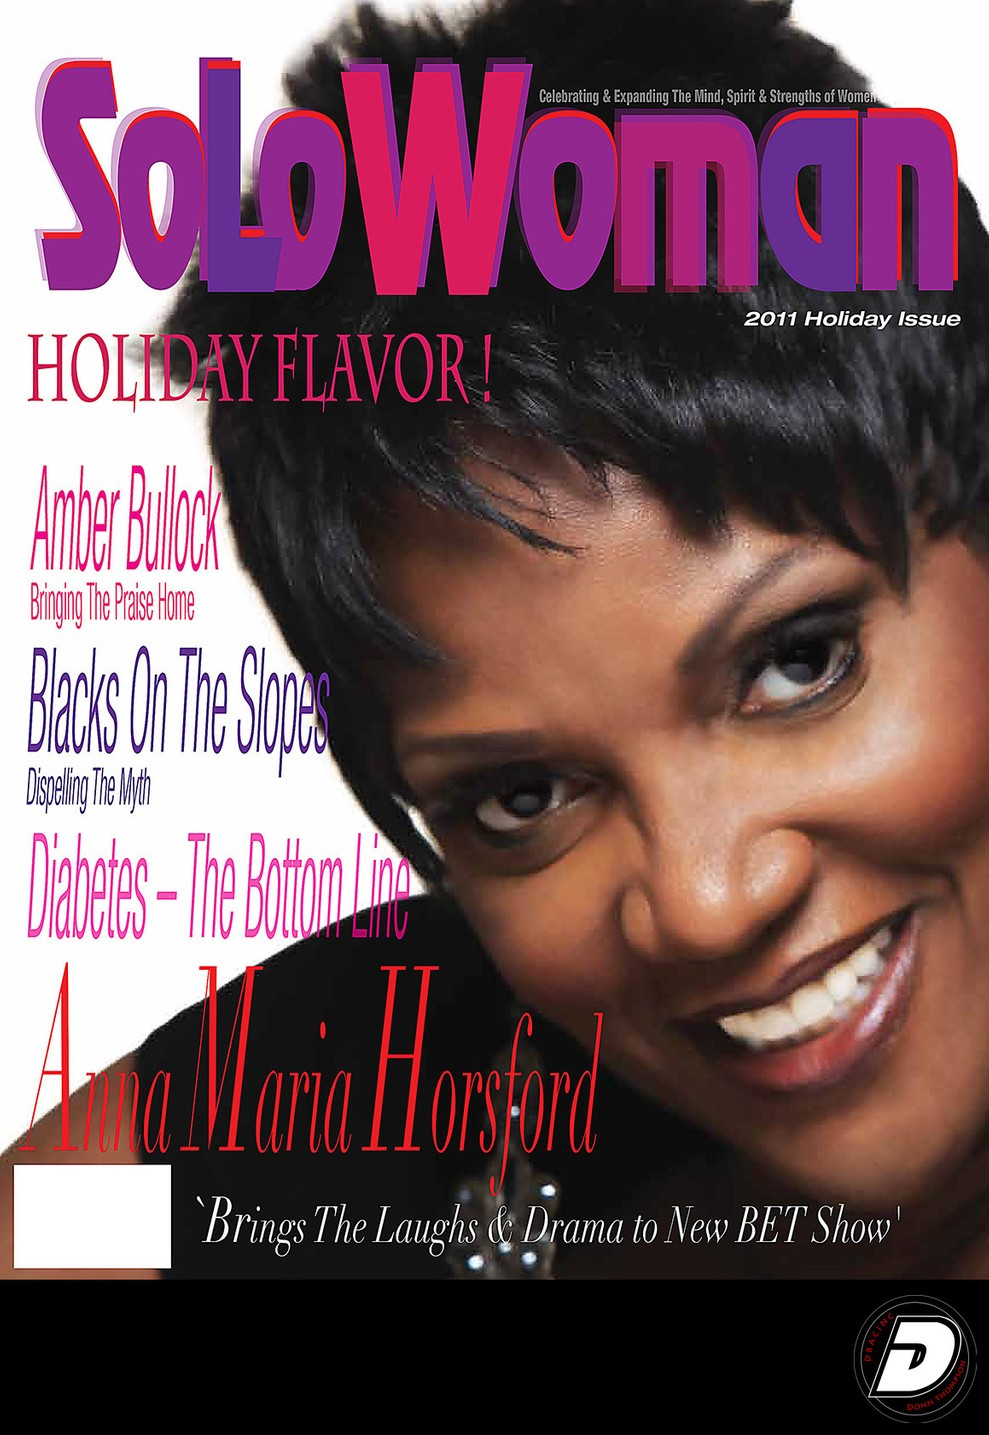 Solo Woman Anna Maria Horsford Cover